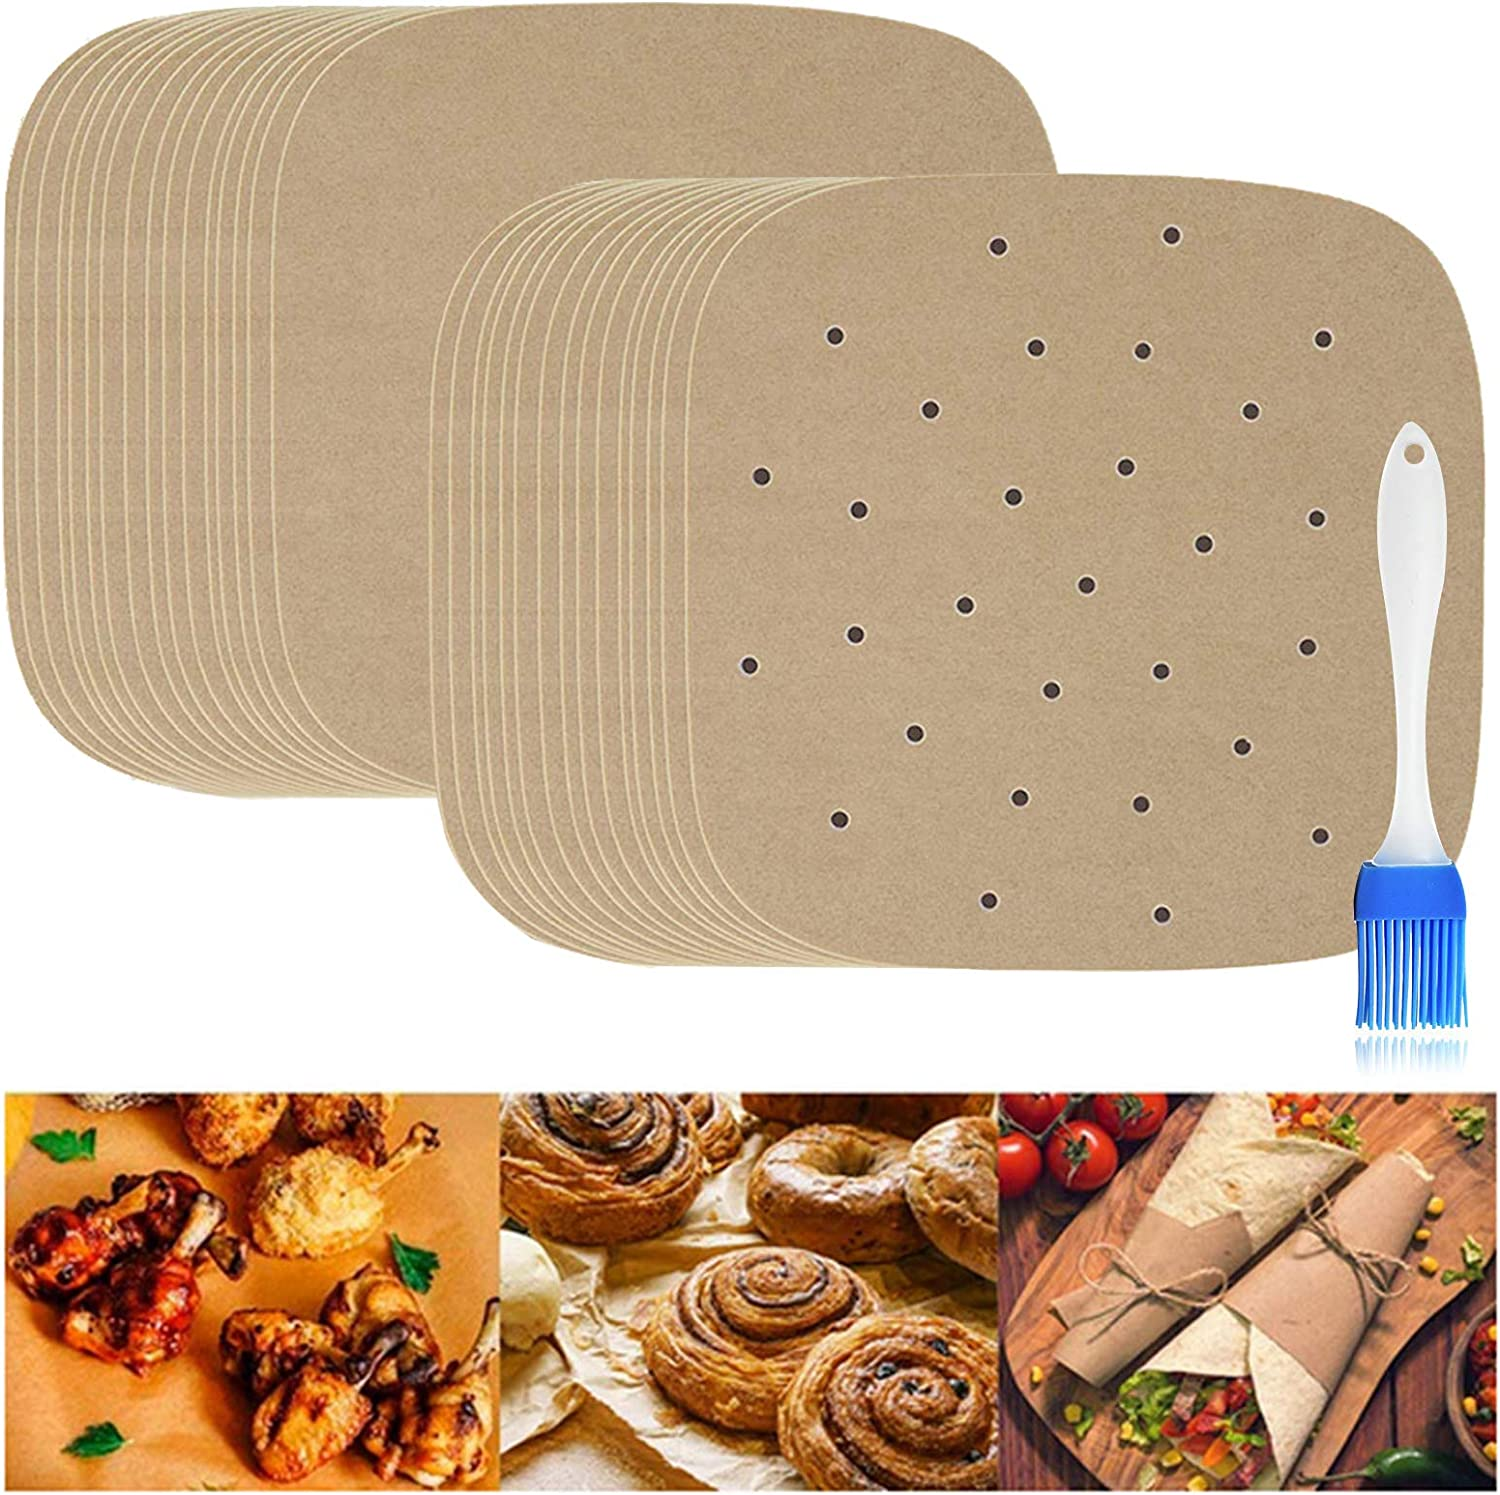 Liners Air Fryer Parchment Paper, IMISUTD 9 Inch Perforated Unbleached Bamboo Steamer Liner Paper for Air Fryer Basket, Cake Pan( Square, 150Pcs)